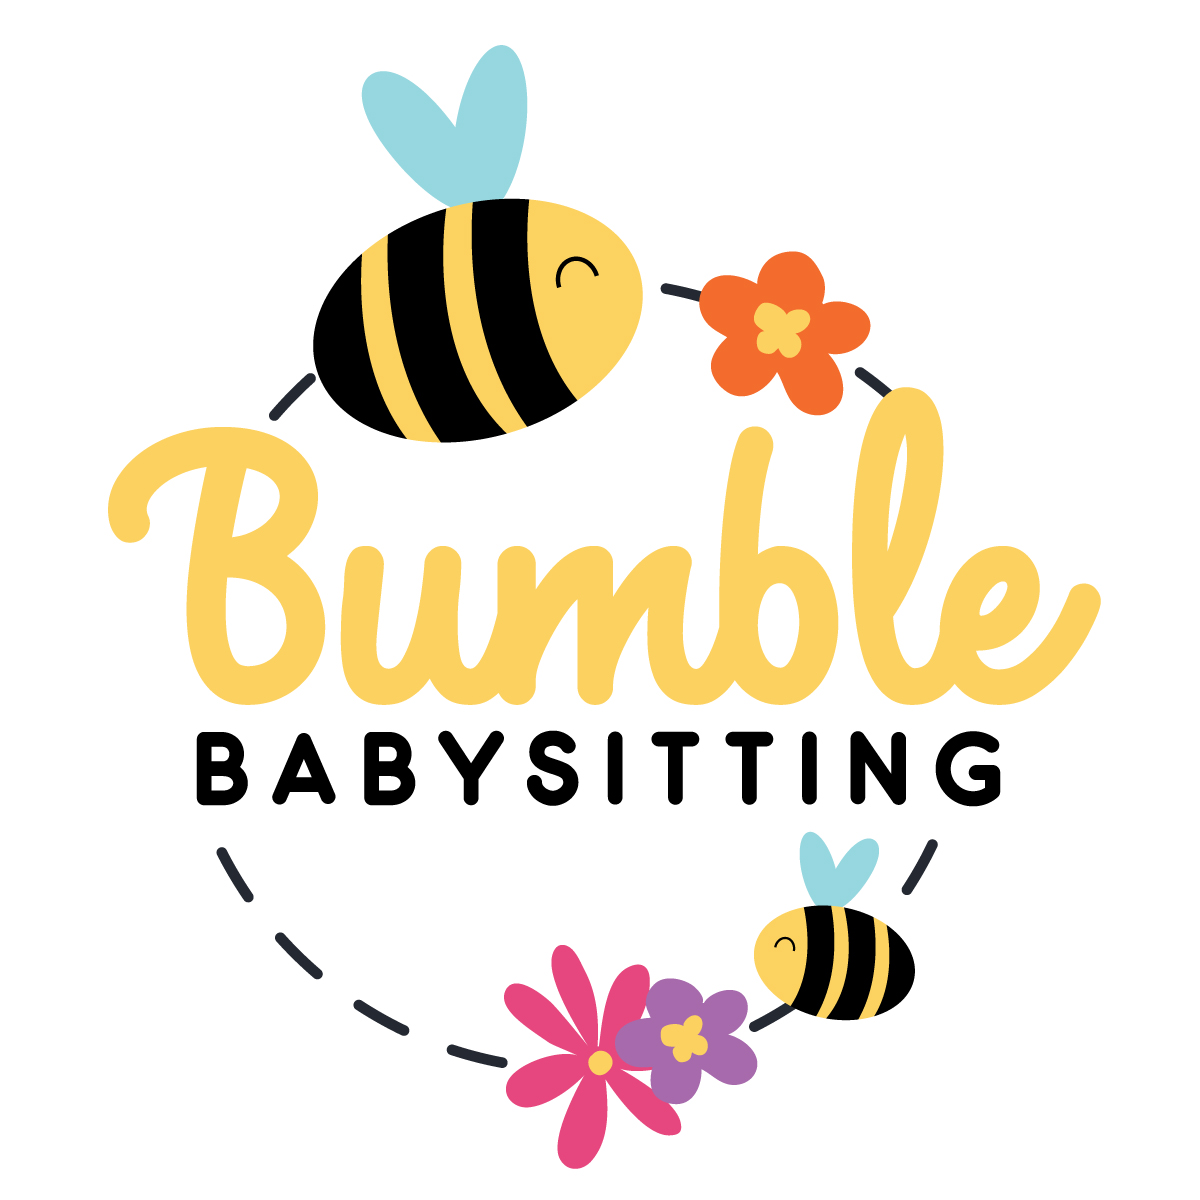 Bumble-babysitting Logo Design